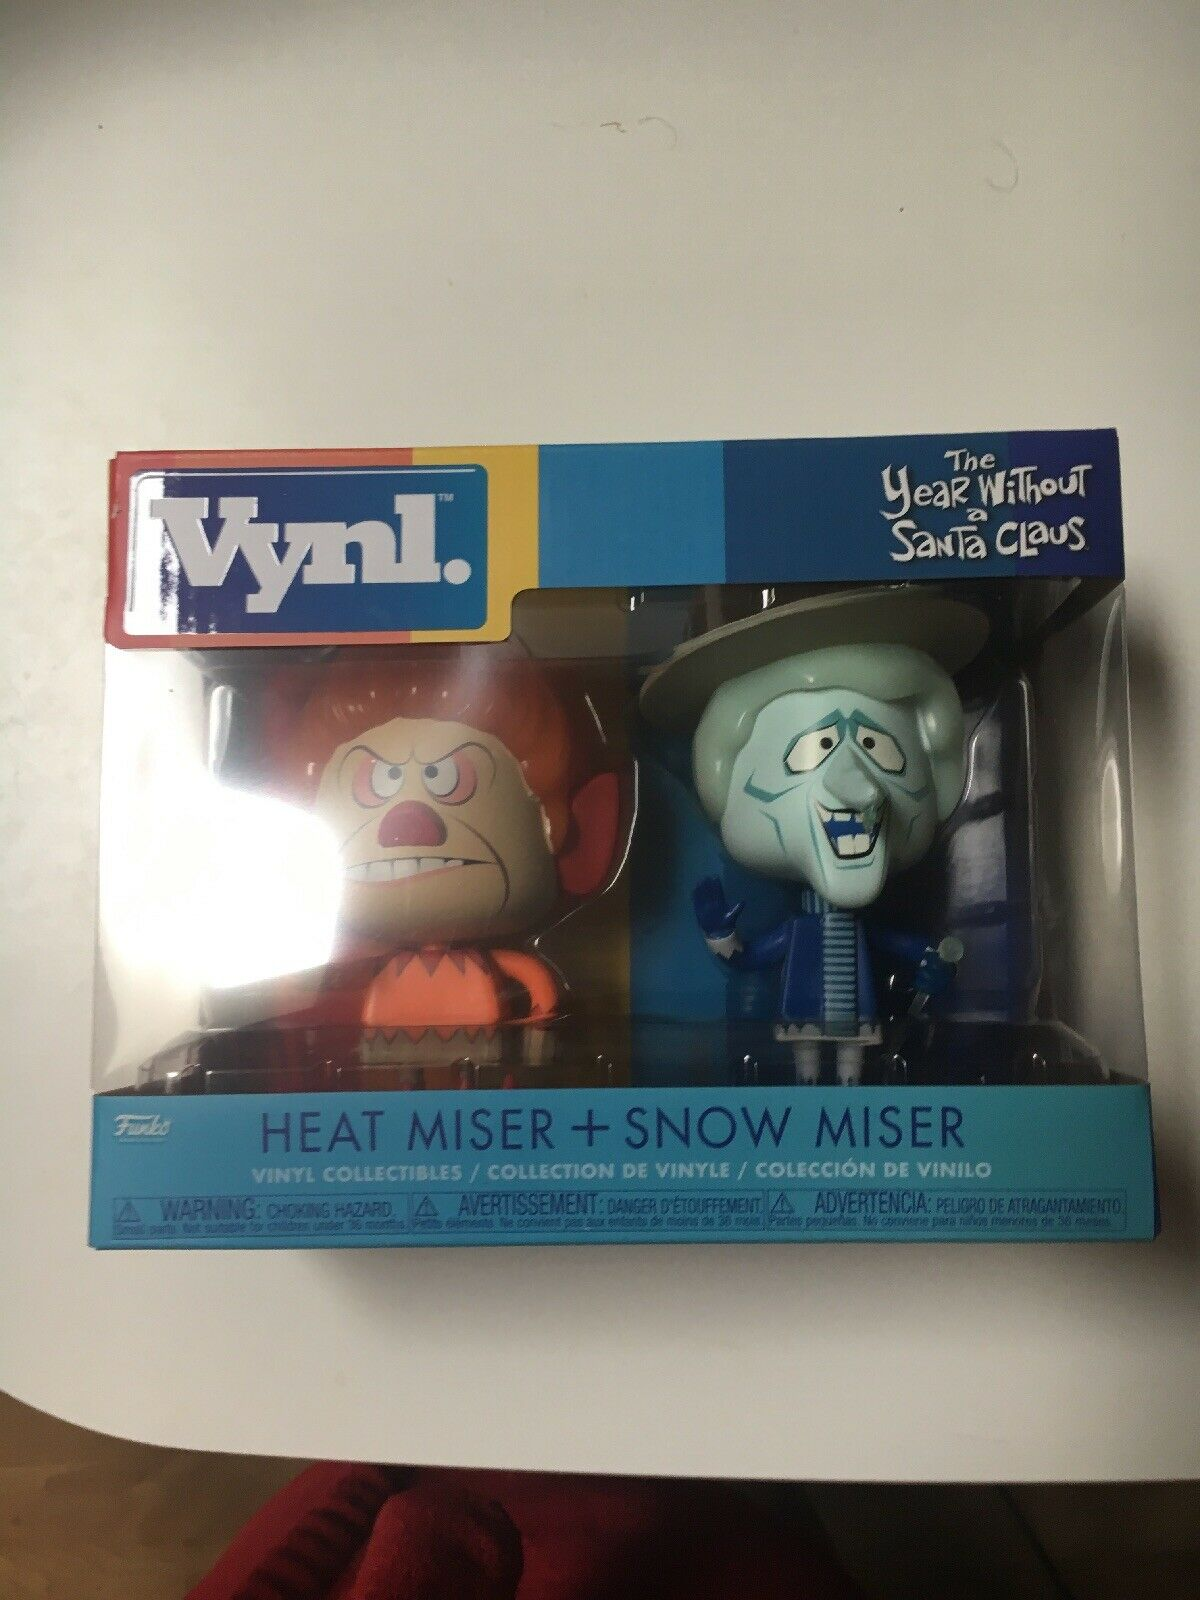 The Year Without A Santa Claus - Heat Miser & Snow Miser Vynl - FunKo RARE